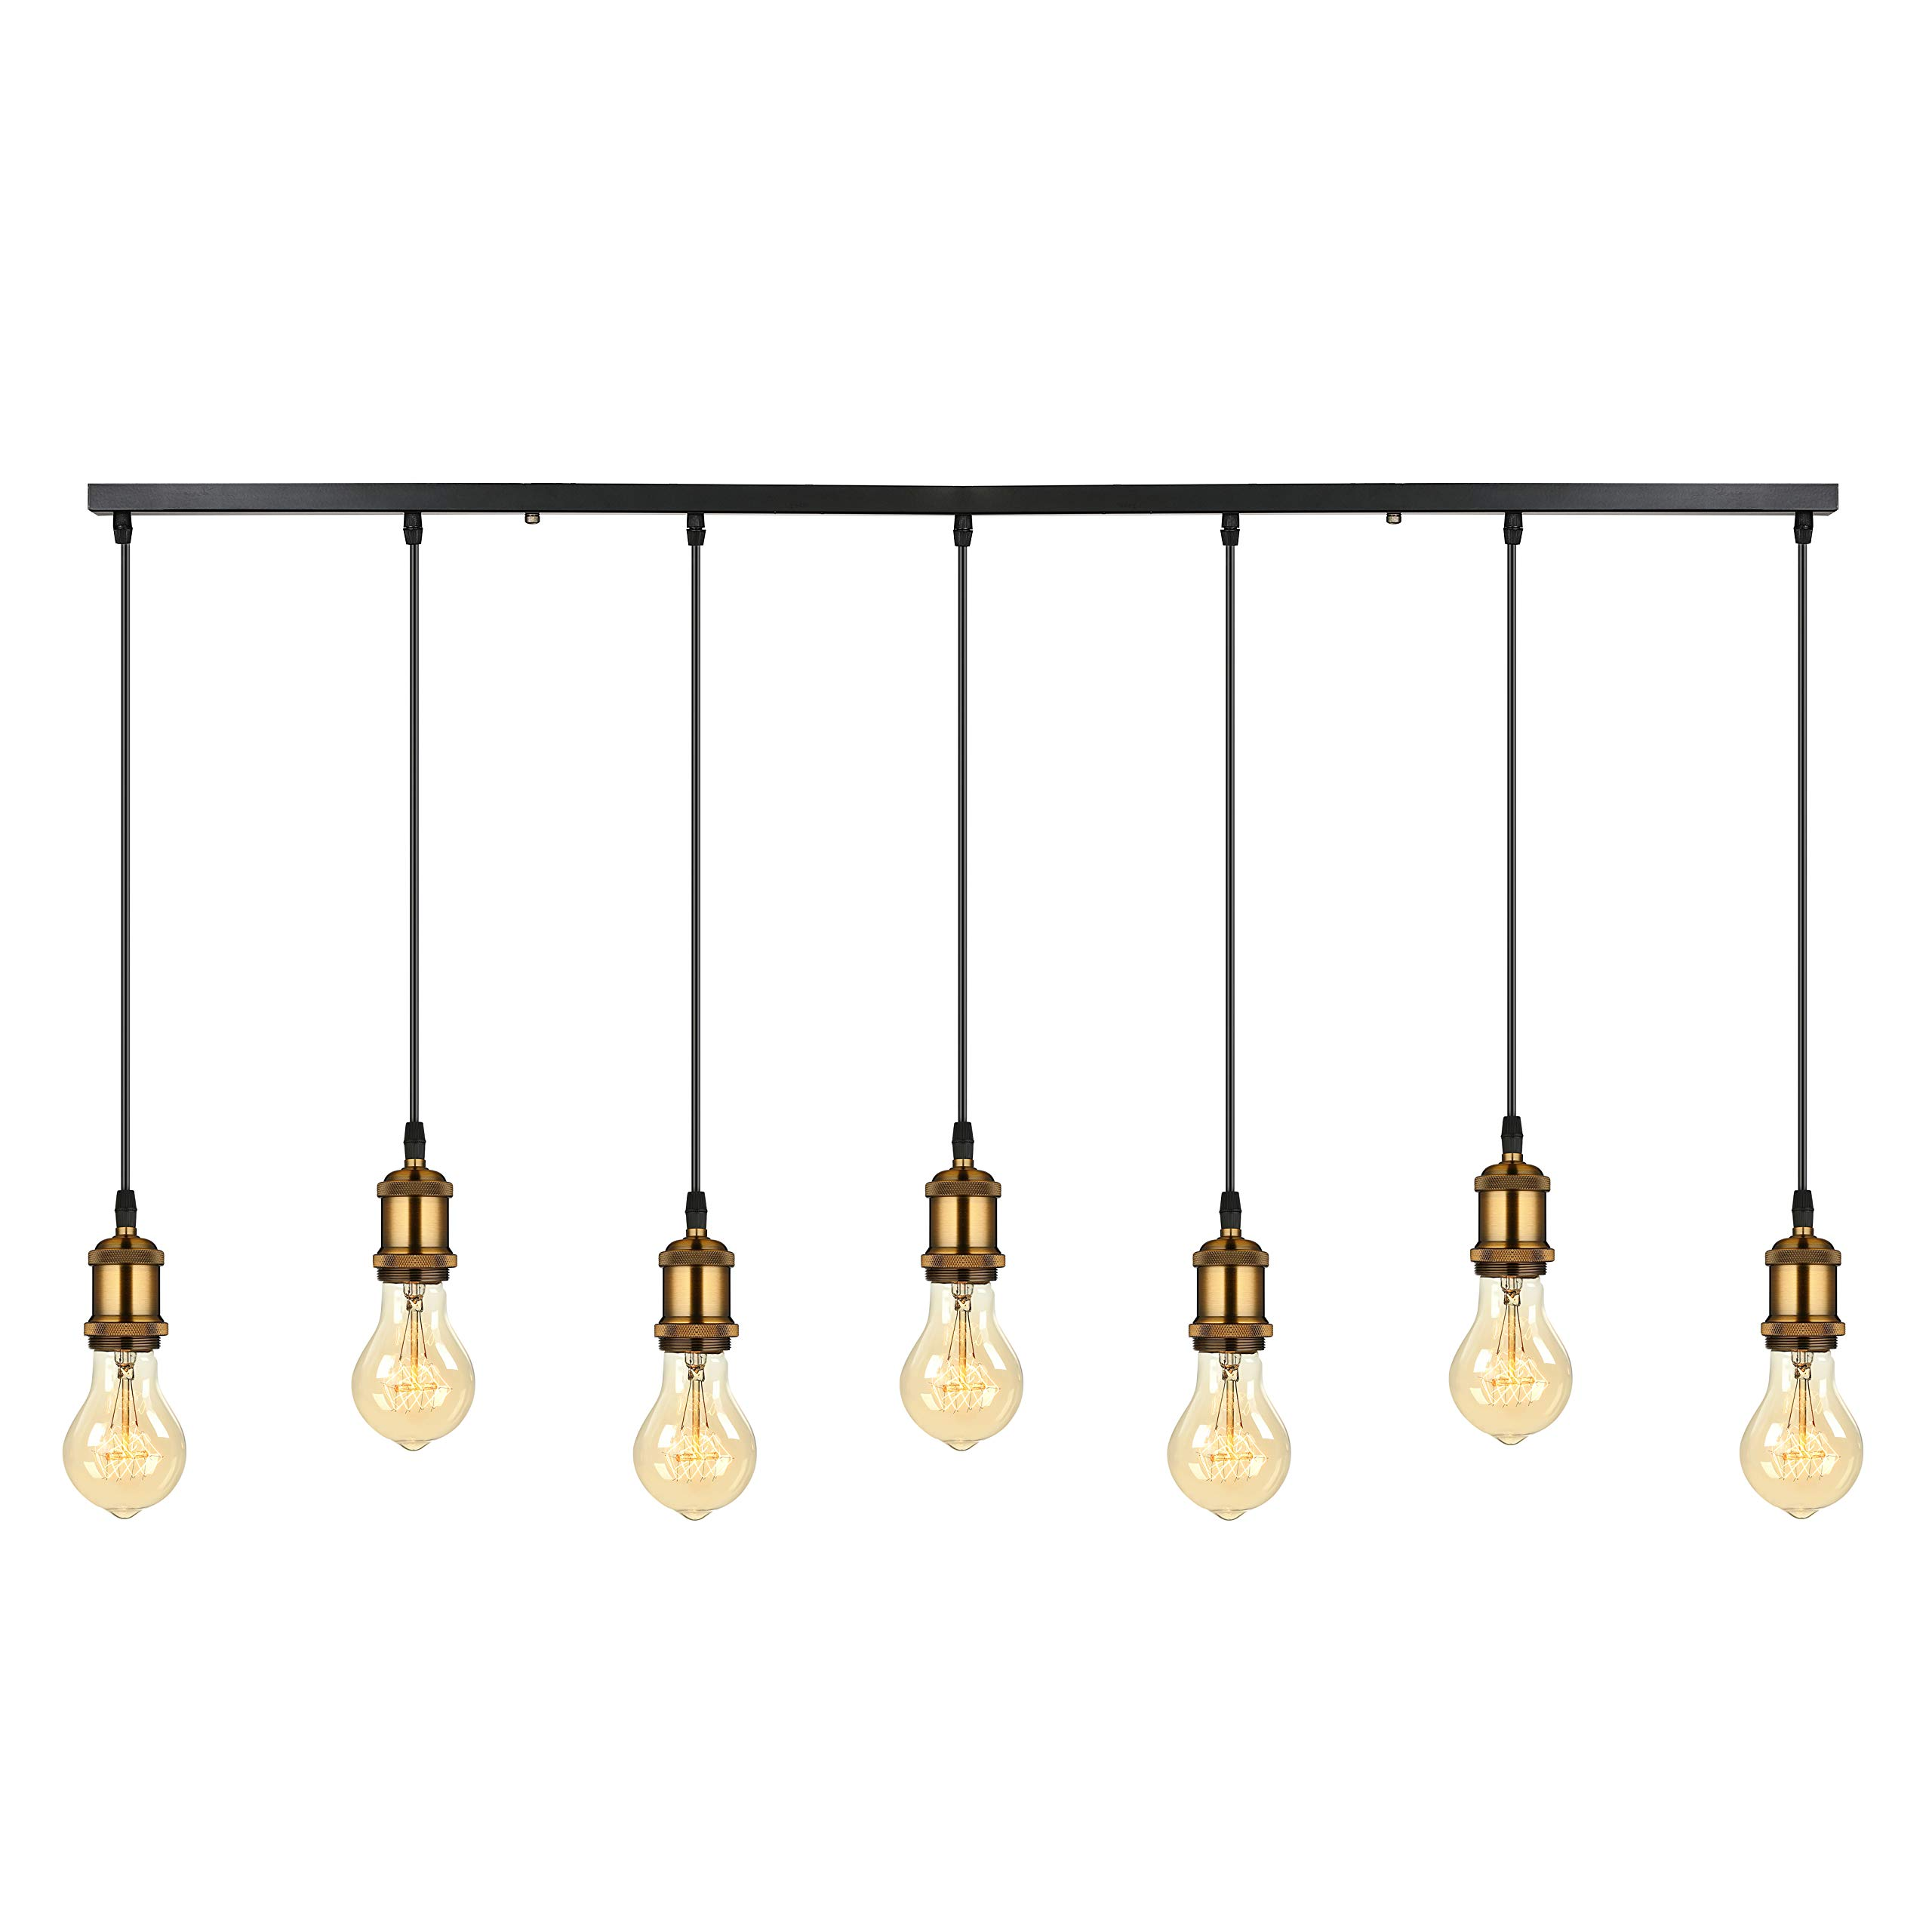 Ladiqi 7 Lights Industrial Pendant Lighting Linear Hanging Ceiling Lights Rustic Kitchen Island Light Fixtures Antique Brass for Dining Table Bar Counter Restaurant